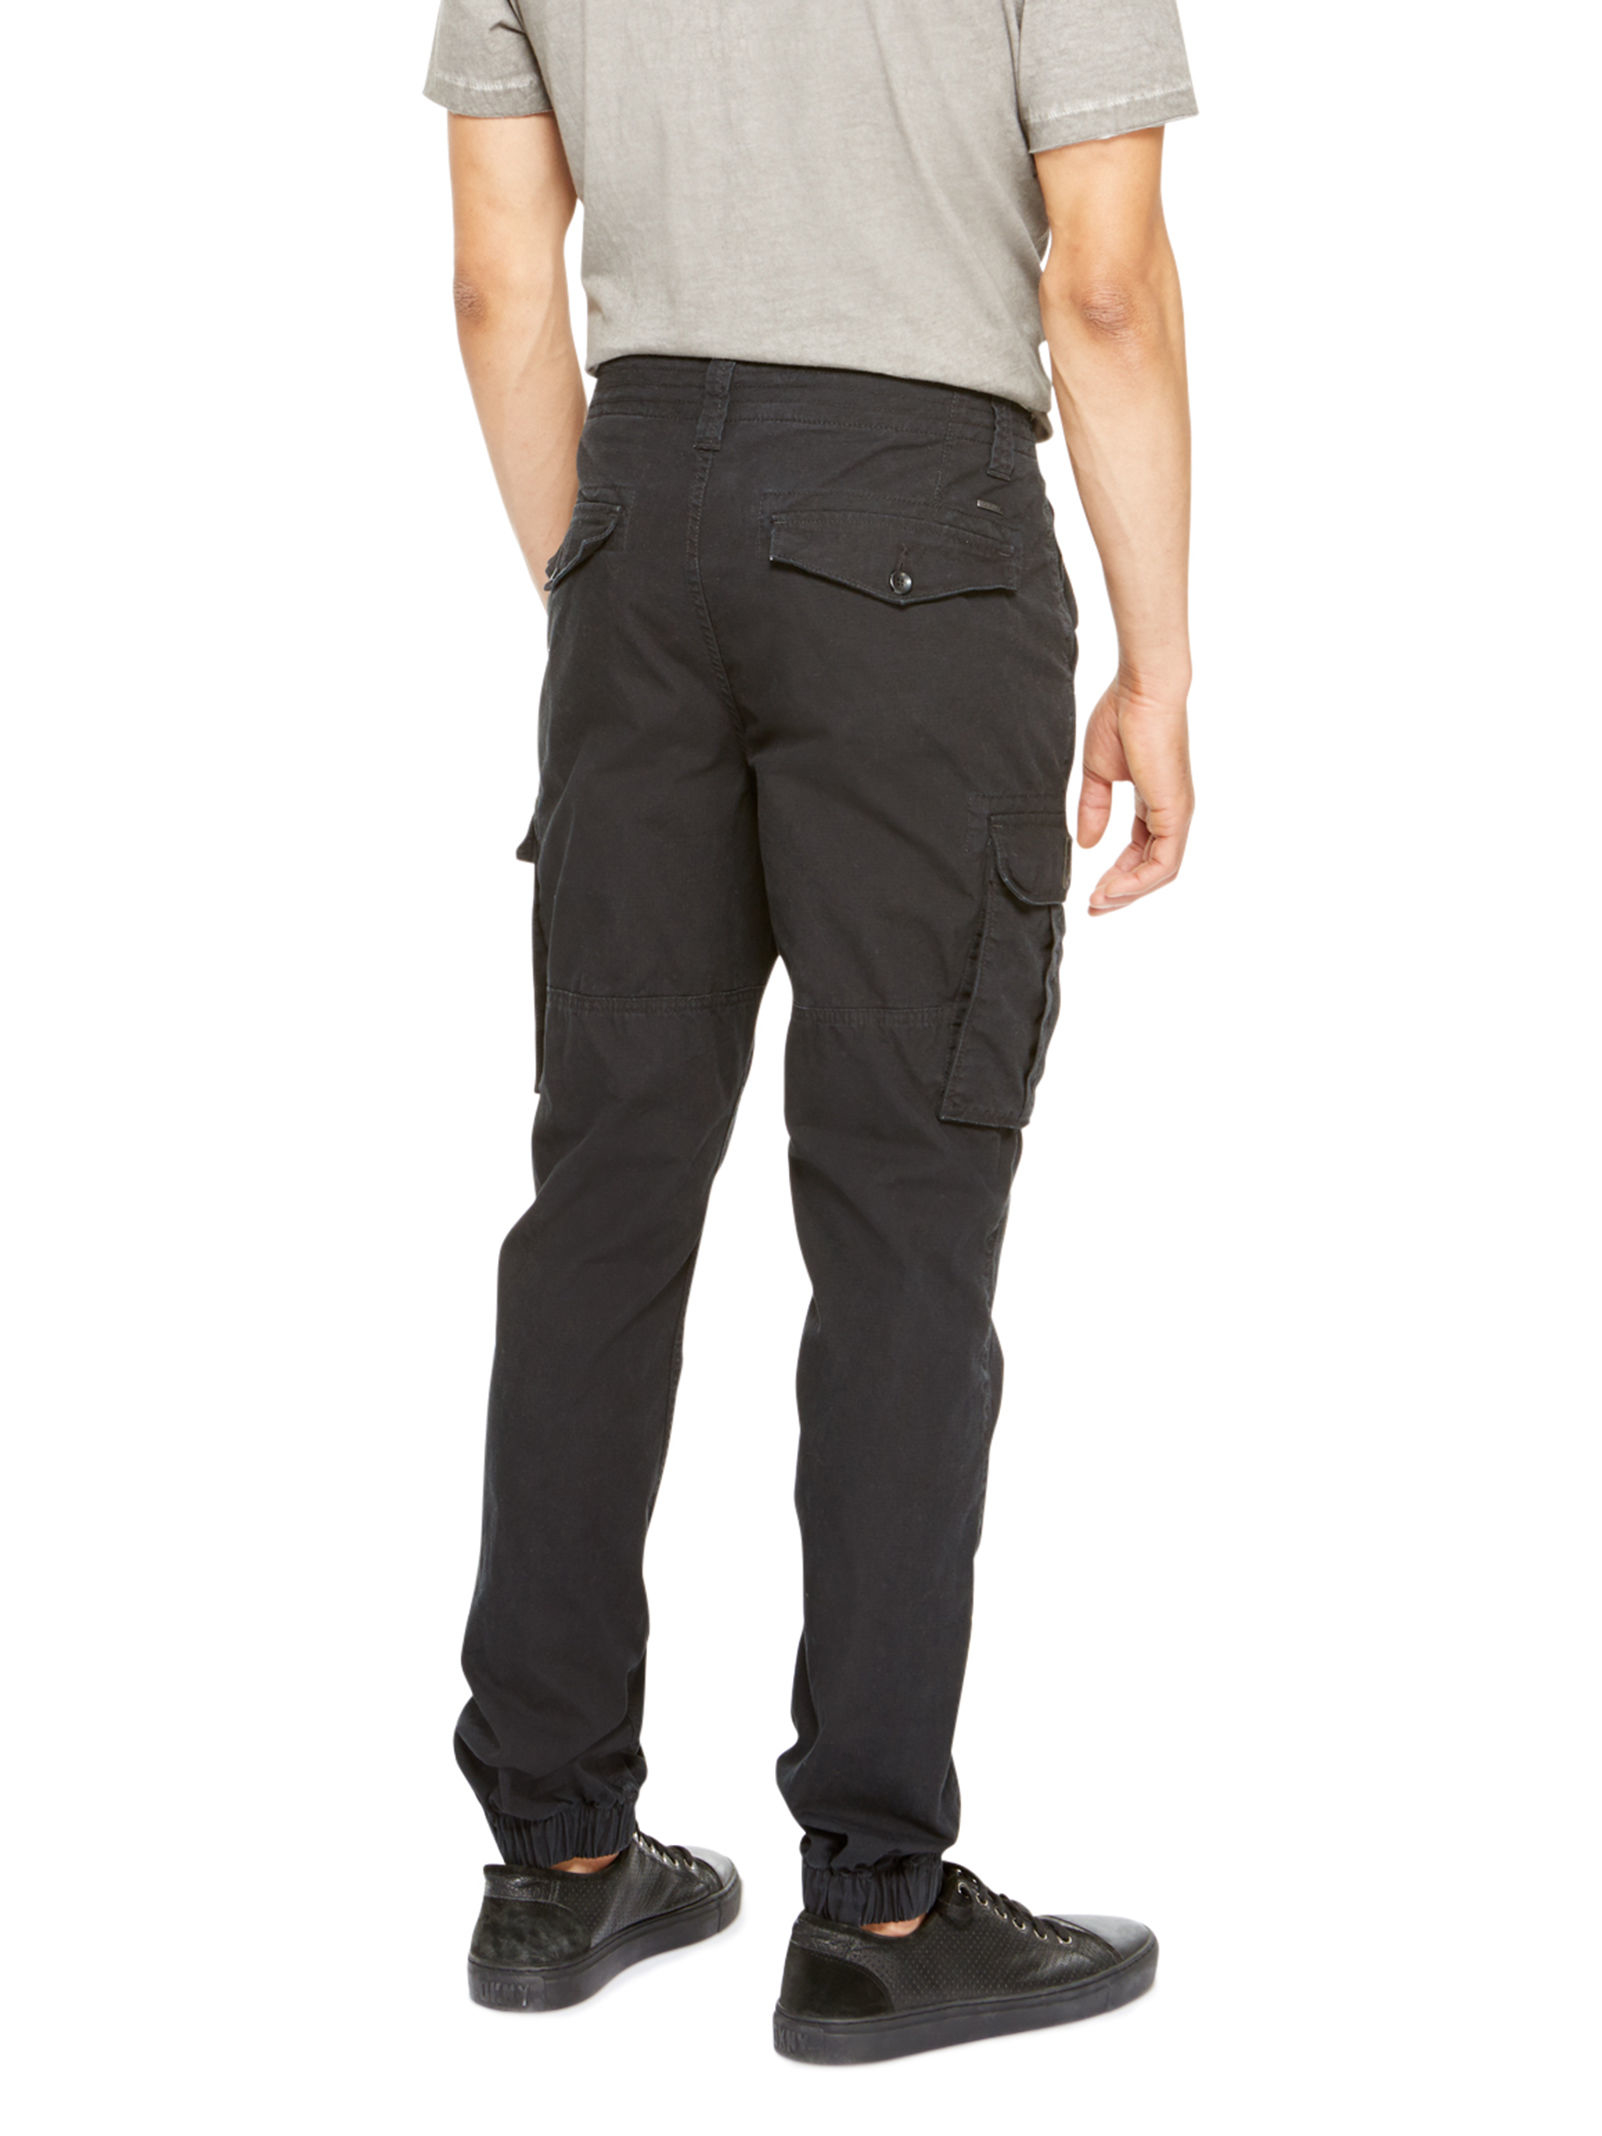 Shop for and buy black jogger pants online at Macy's. Find black jogger pants at Macy's.